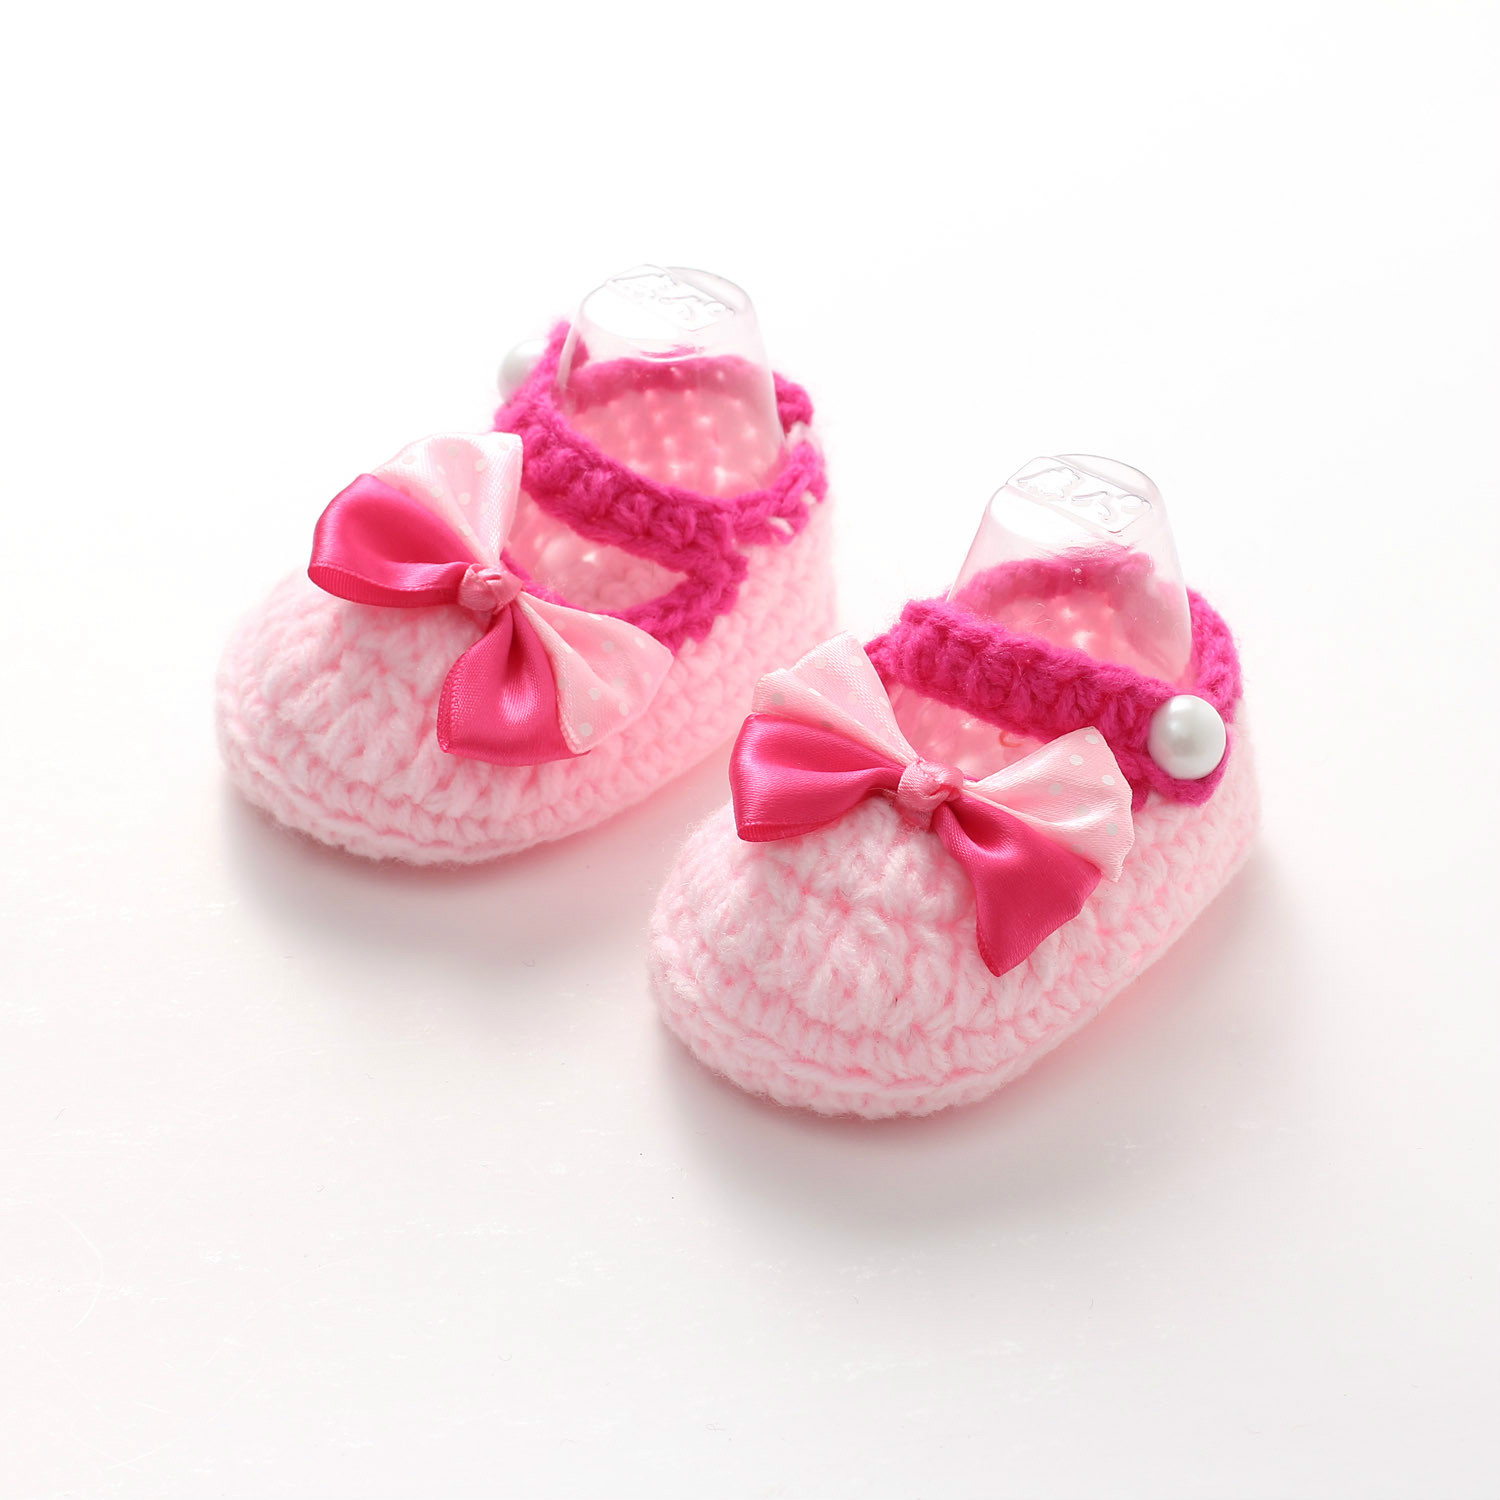 11cm 1pair pure manual weaving yarn Baby soft bottom toddler shoes Bowknot is baby pink XD-197 Toddler Girl Shoes